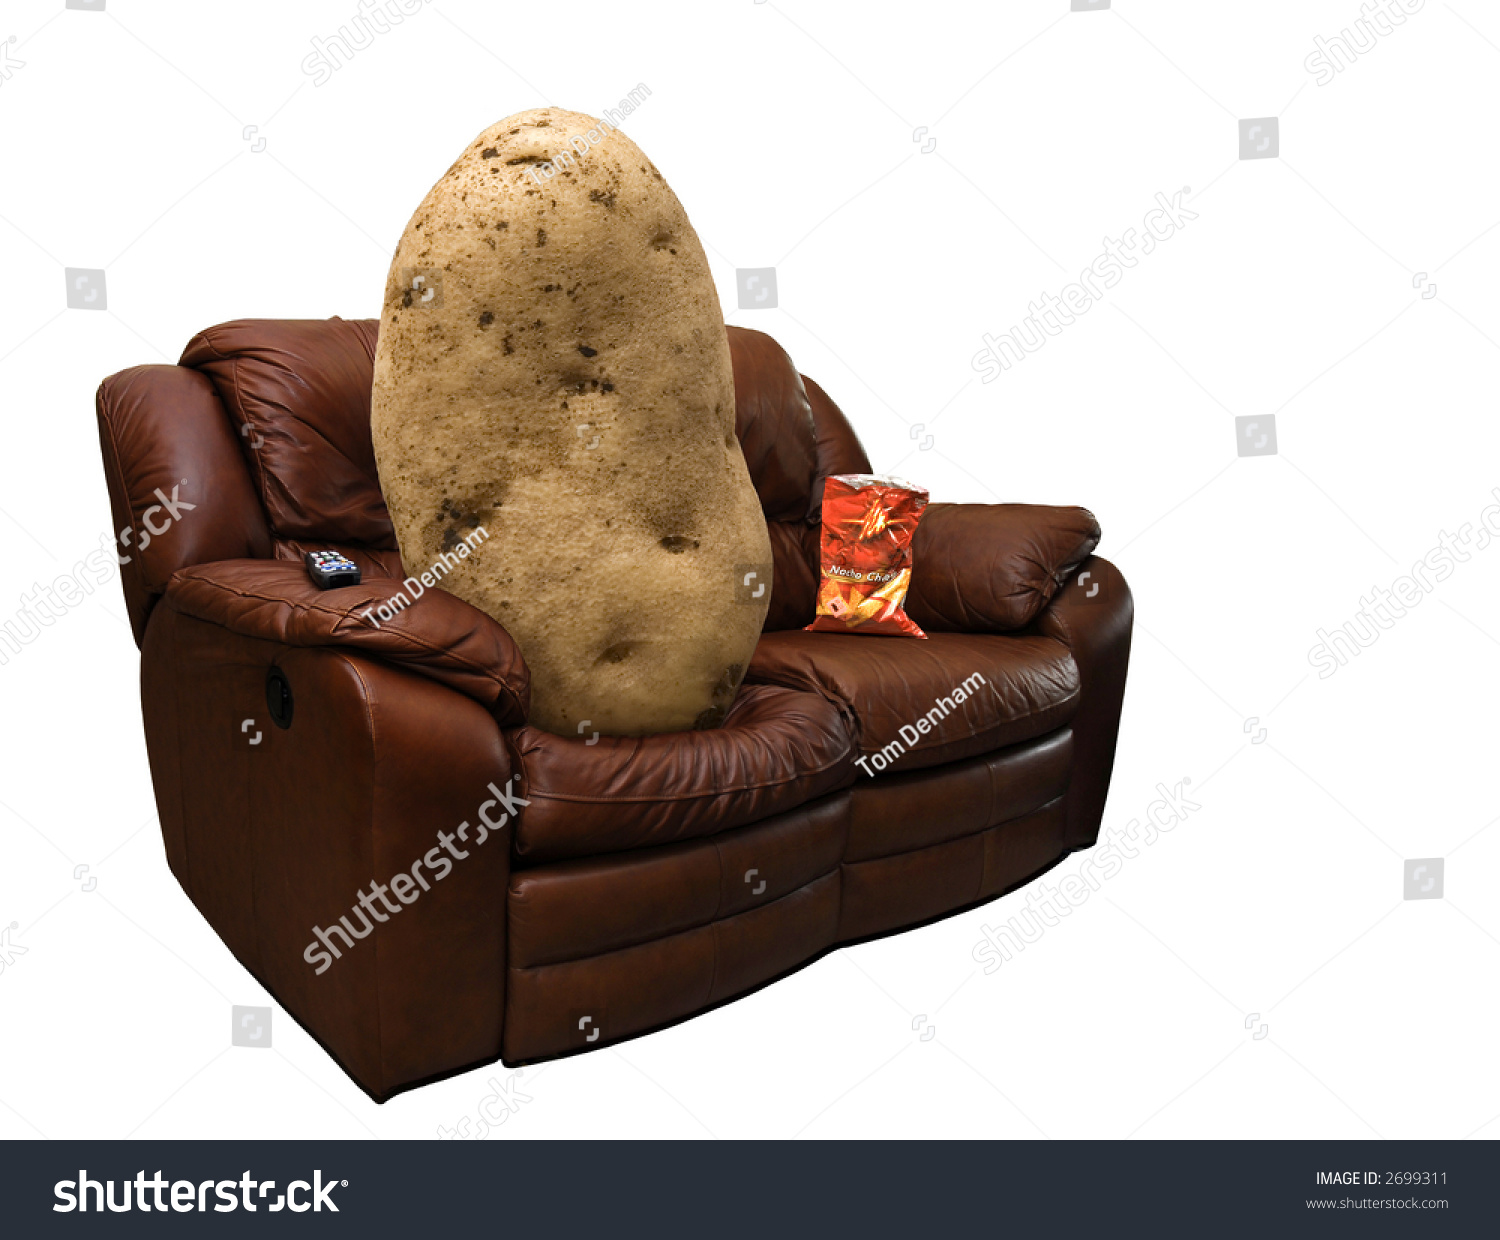 Photo of a potato on a leather couch with a bag of chips for The couch potato furniture